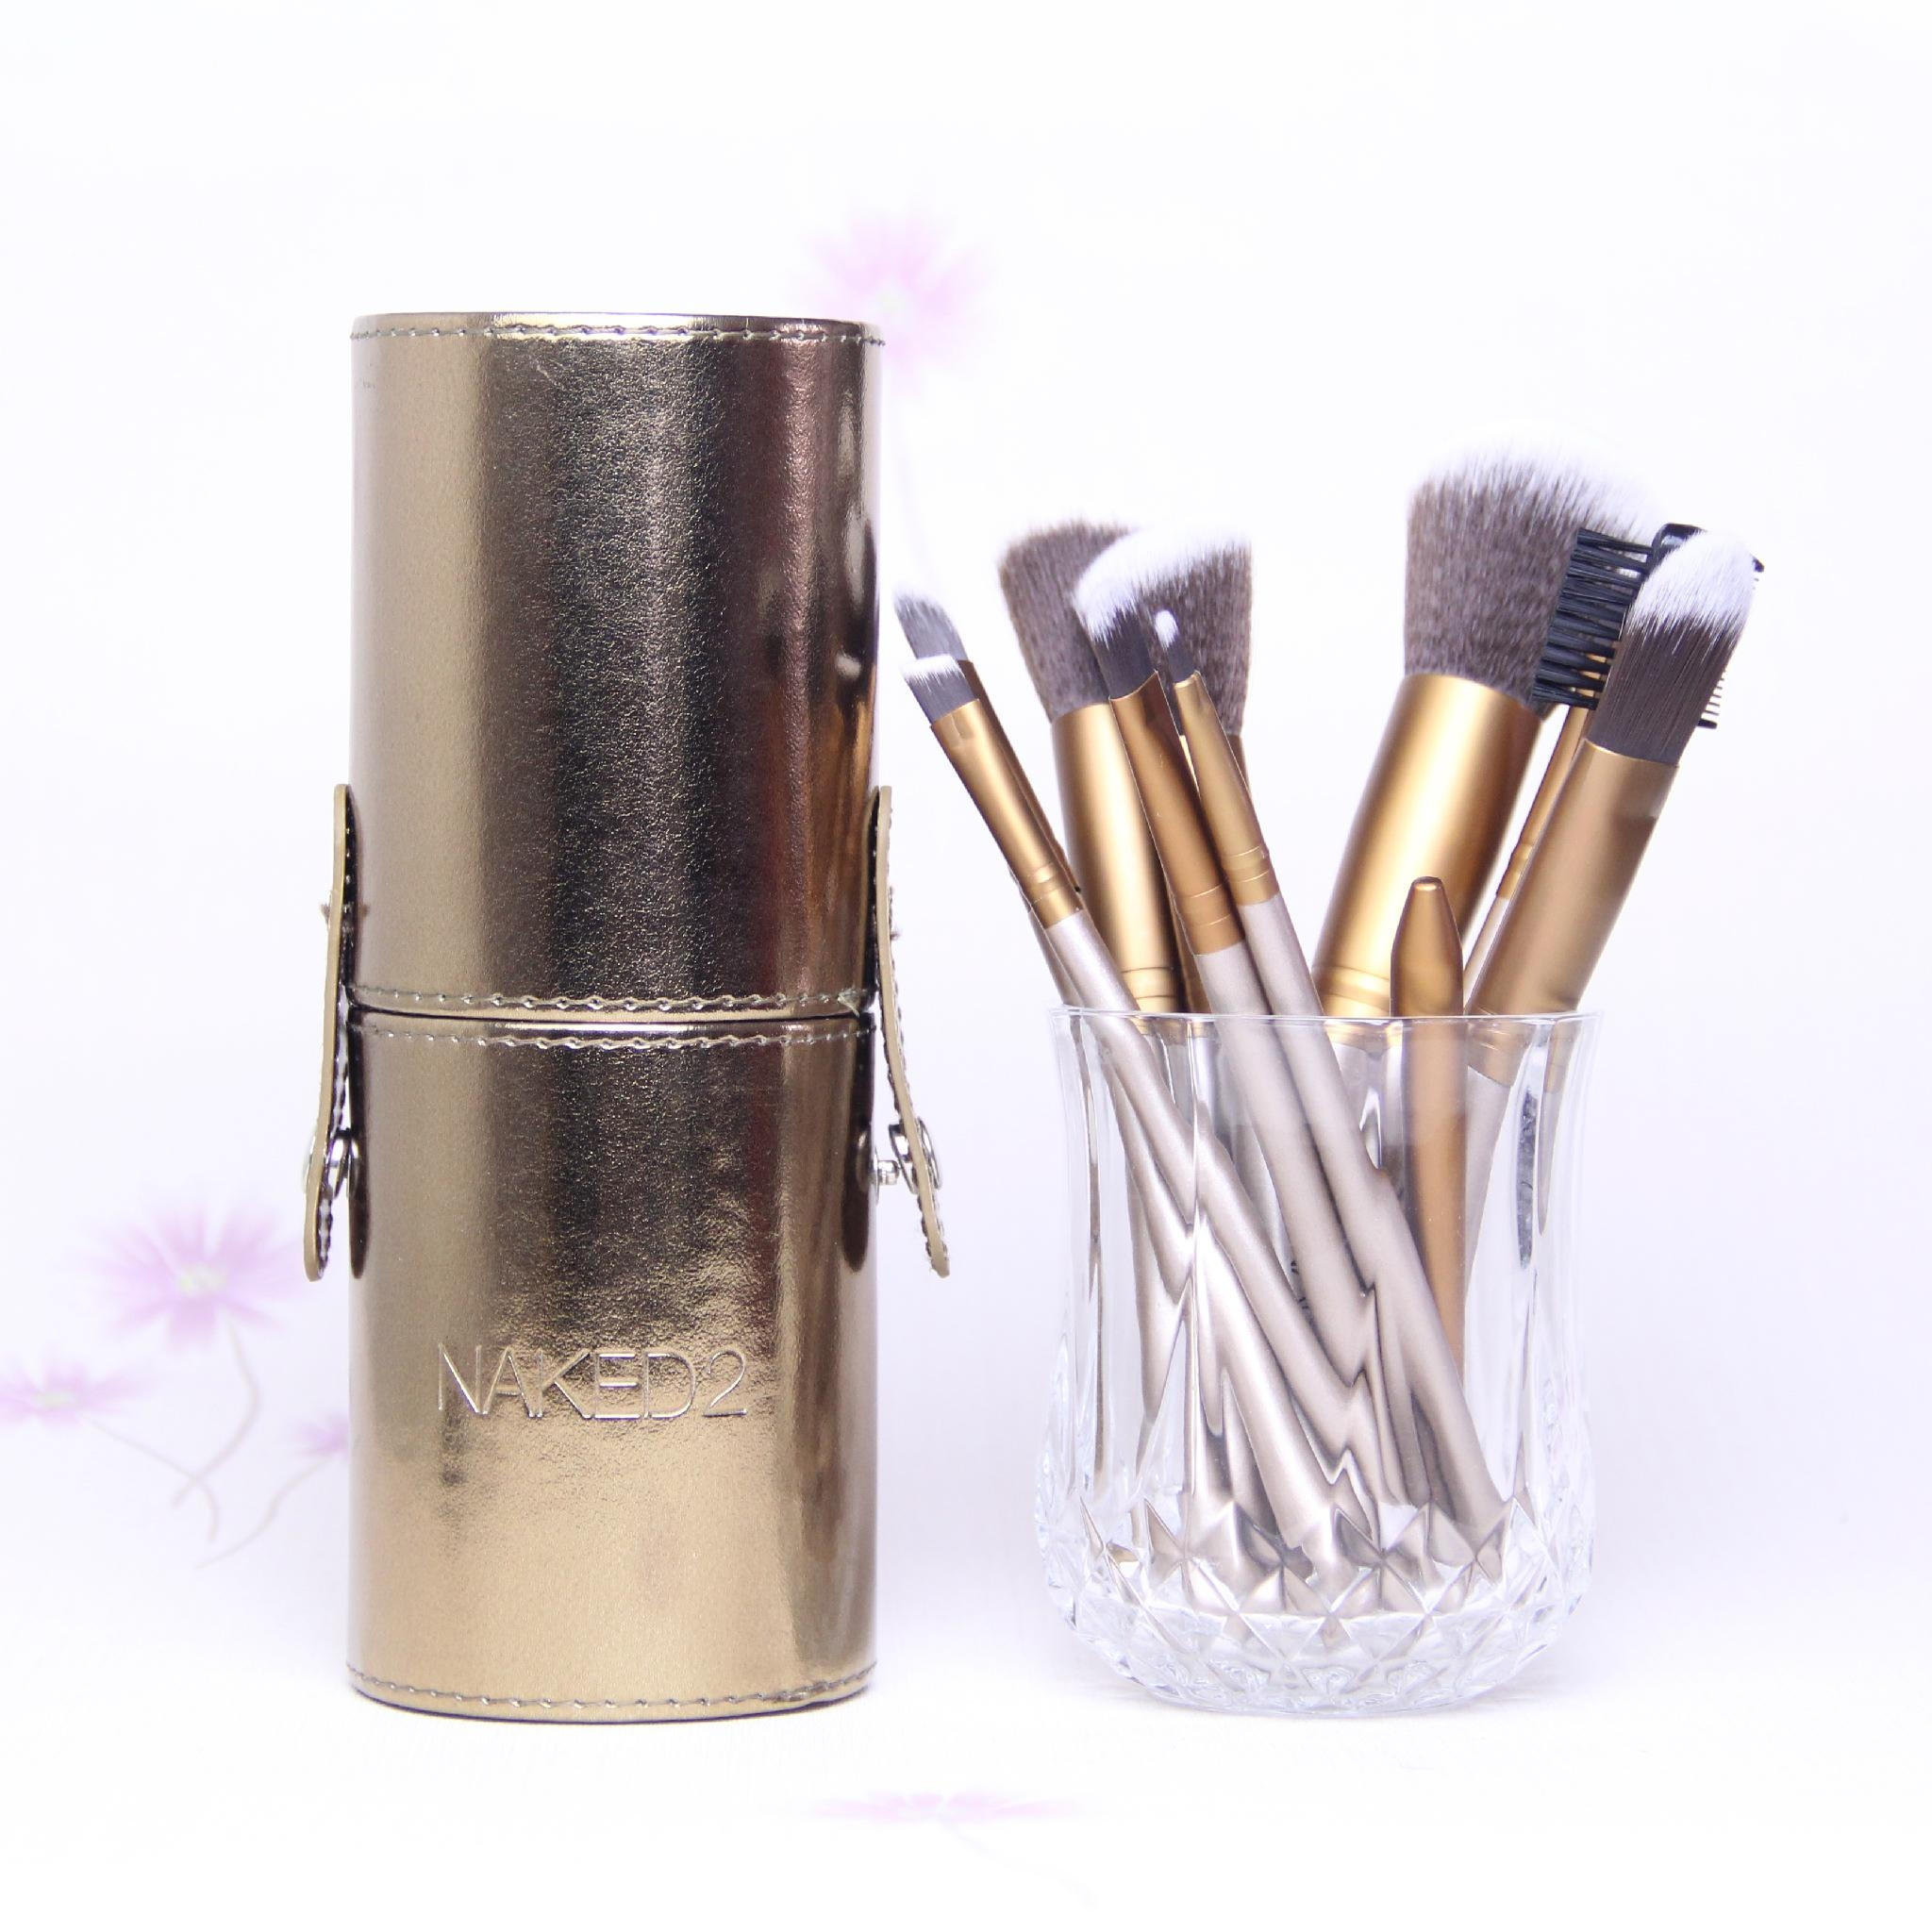 Gold naked2 12pc makeup brush set travel tool with cyliner brush cup holder 5